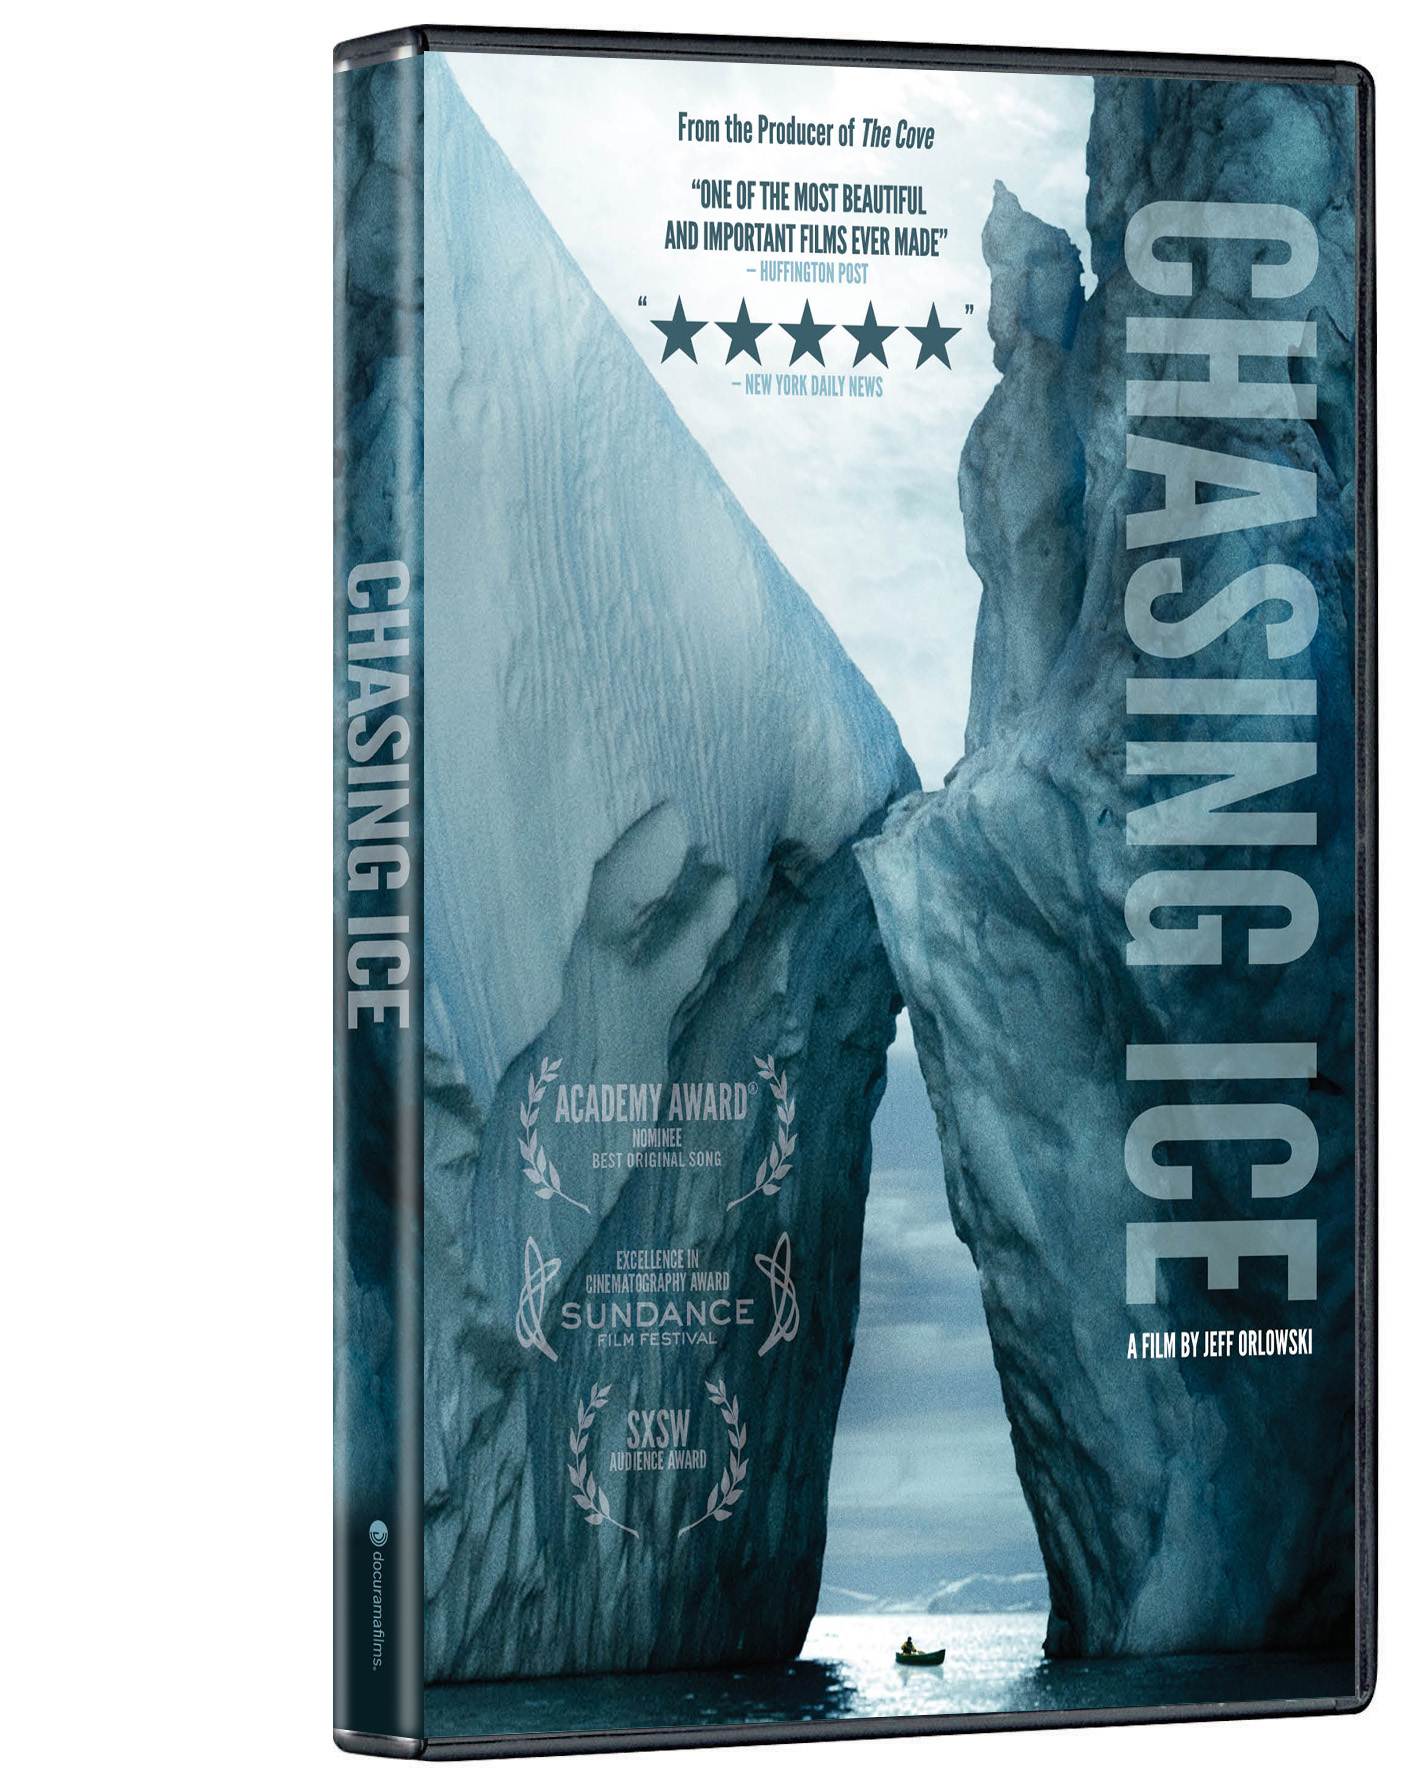 an analysis of the 2012 film chasing ice Chasing ice premiered at the 2012 sundance film festival, where it won for   balog: if i can put my own point on it, to me, the summary point.